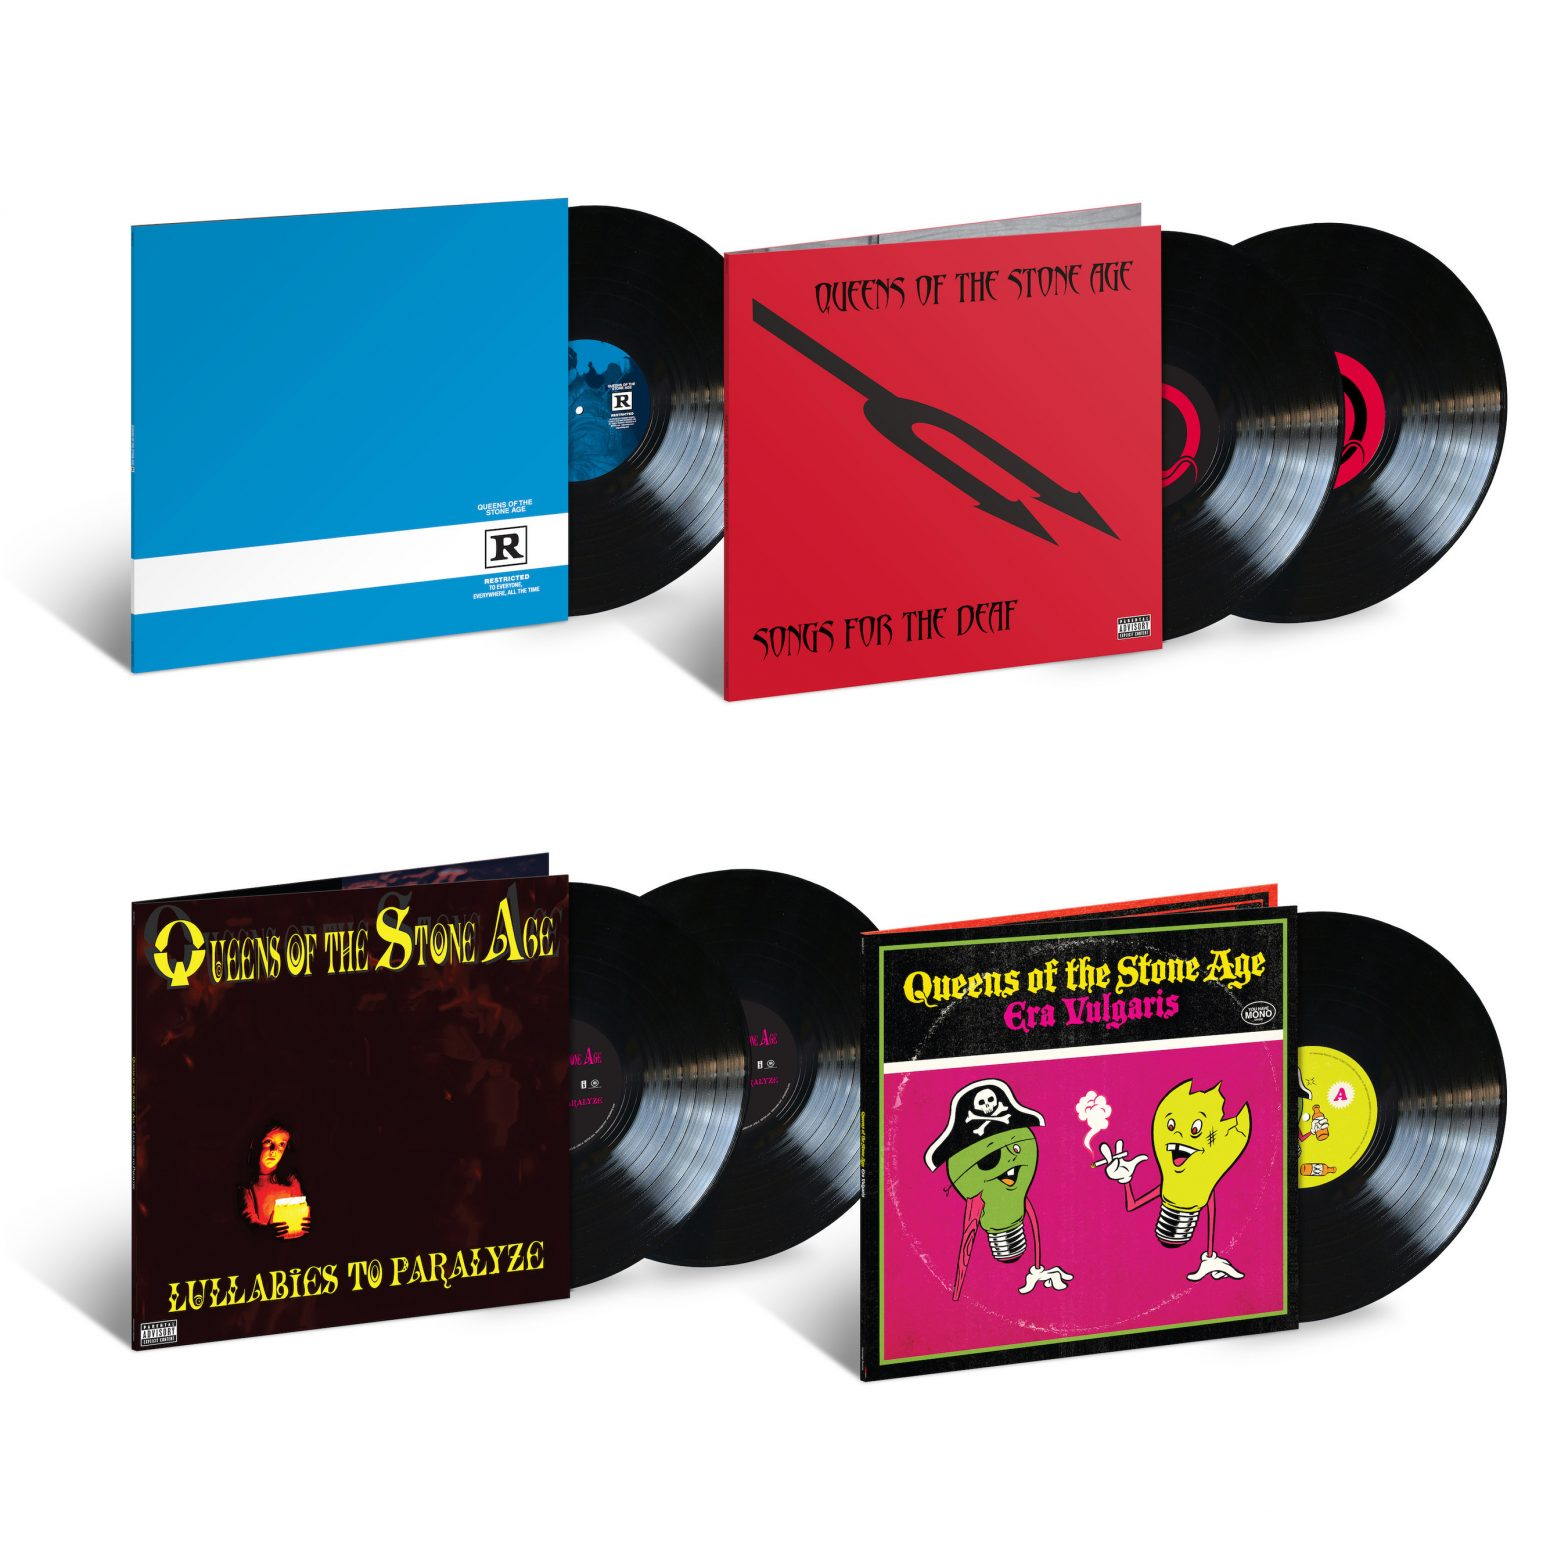 QUEENS OF THE STONE AGE FOUR INTERSCOPE STUDIO ALBUMS